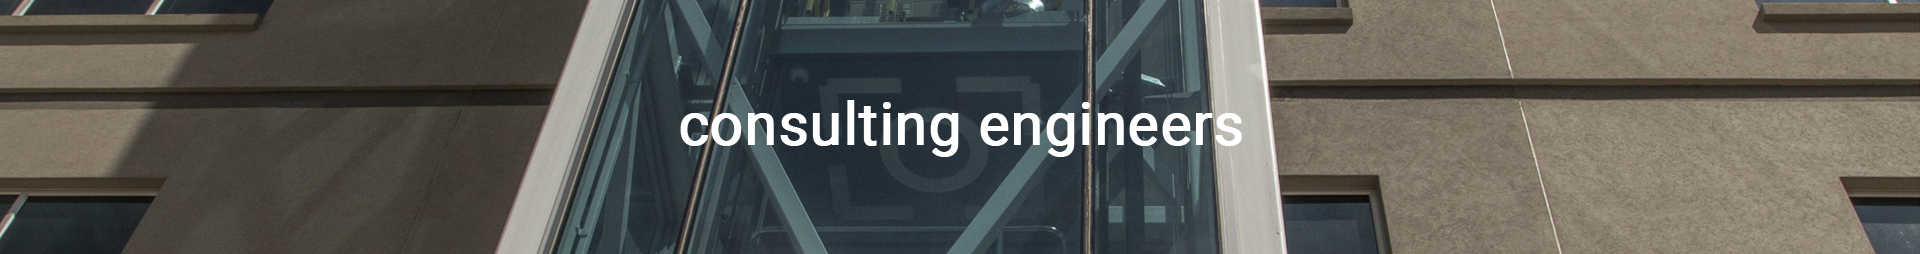 consulting-engineers